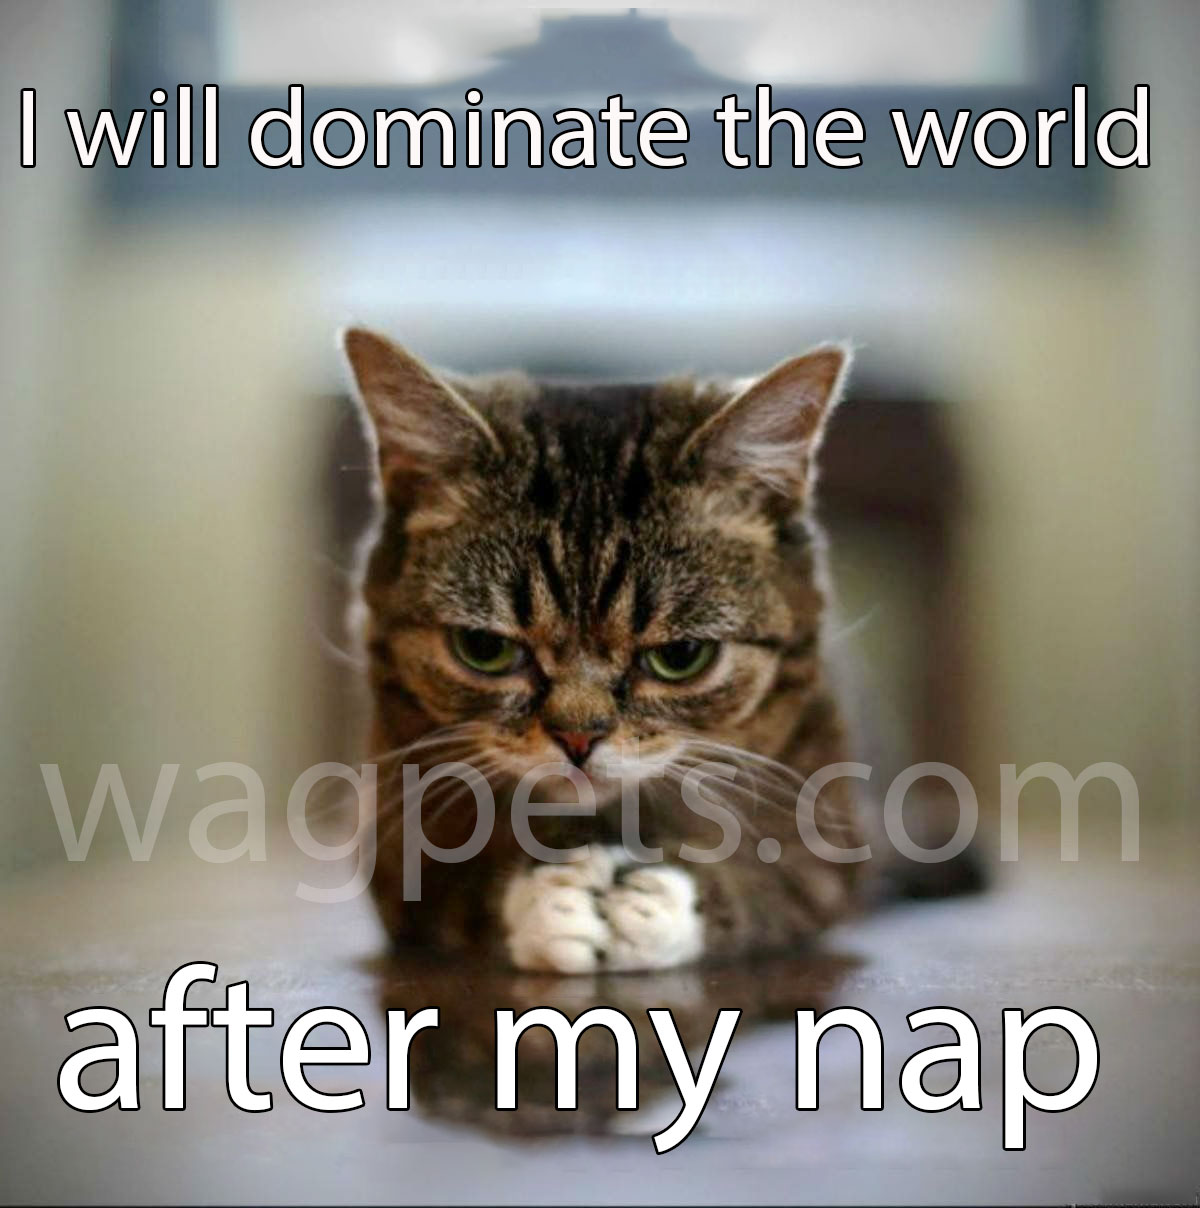 I will dominate the world after my nap